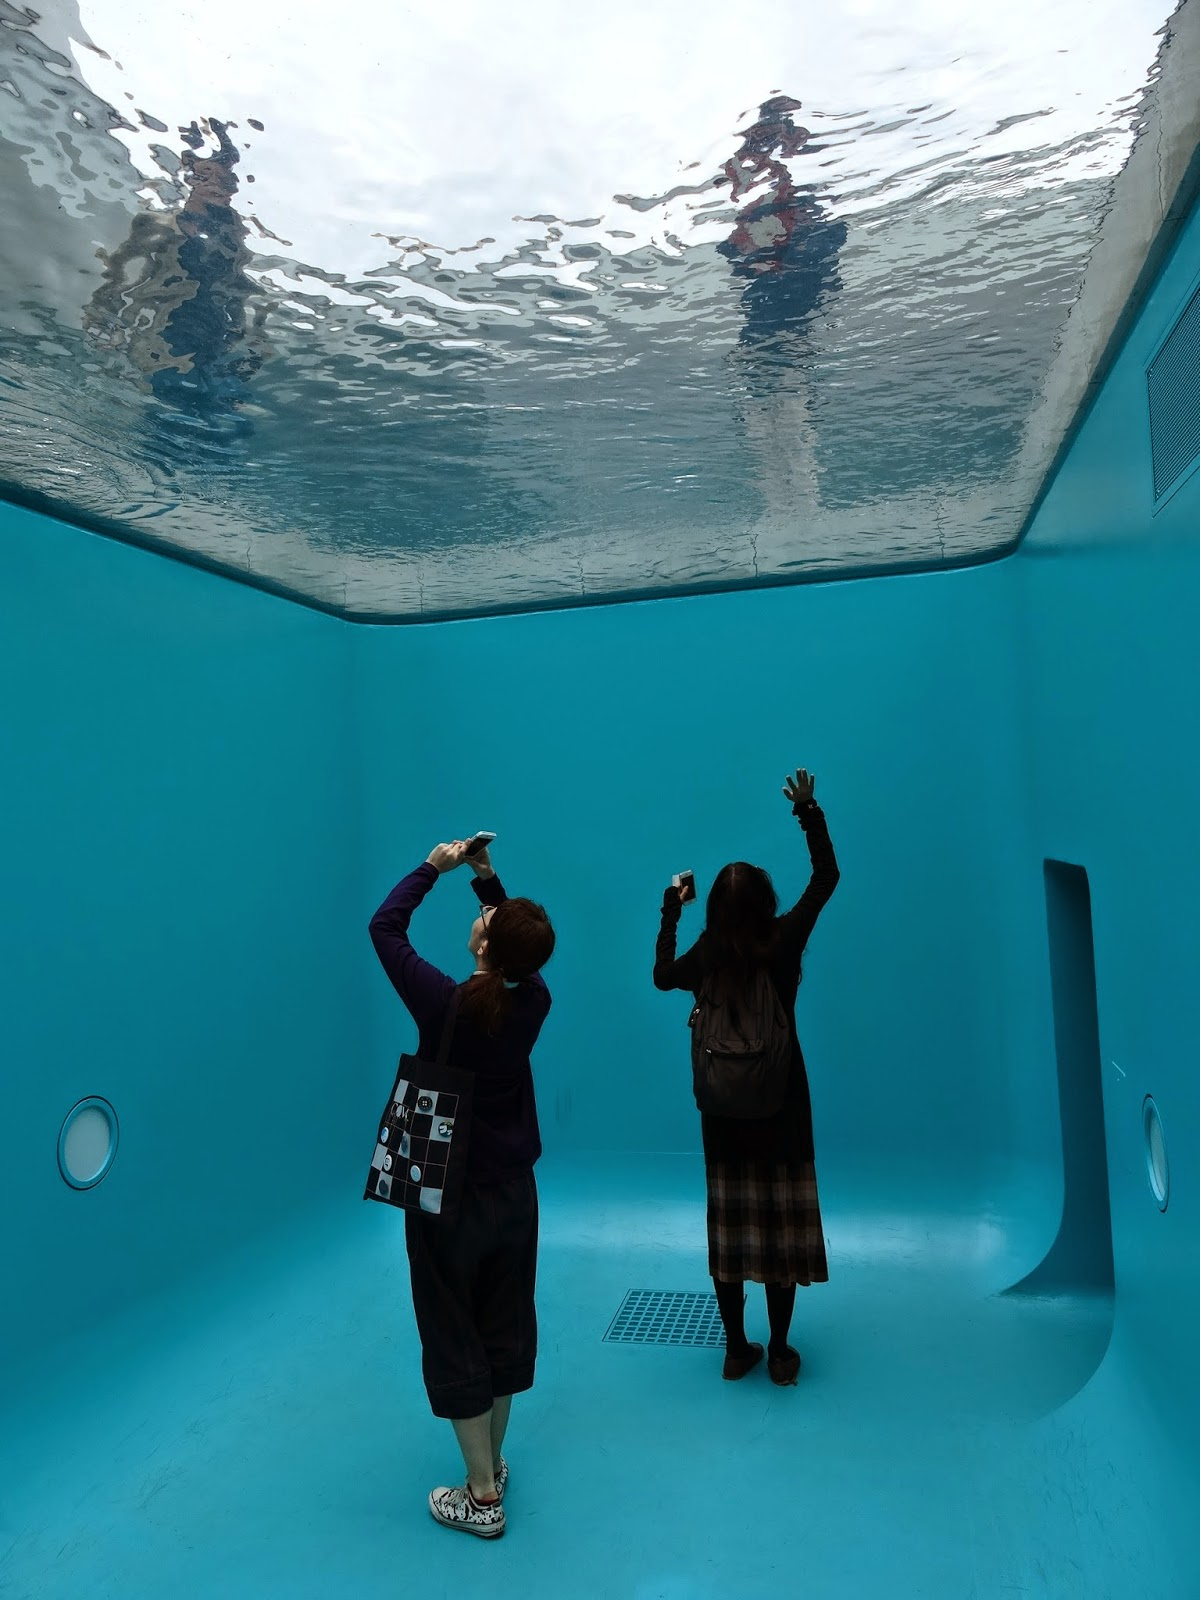 Swimming Pool Art : Webs of significance leandro erlich at kanazawa